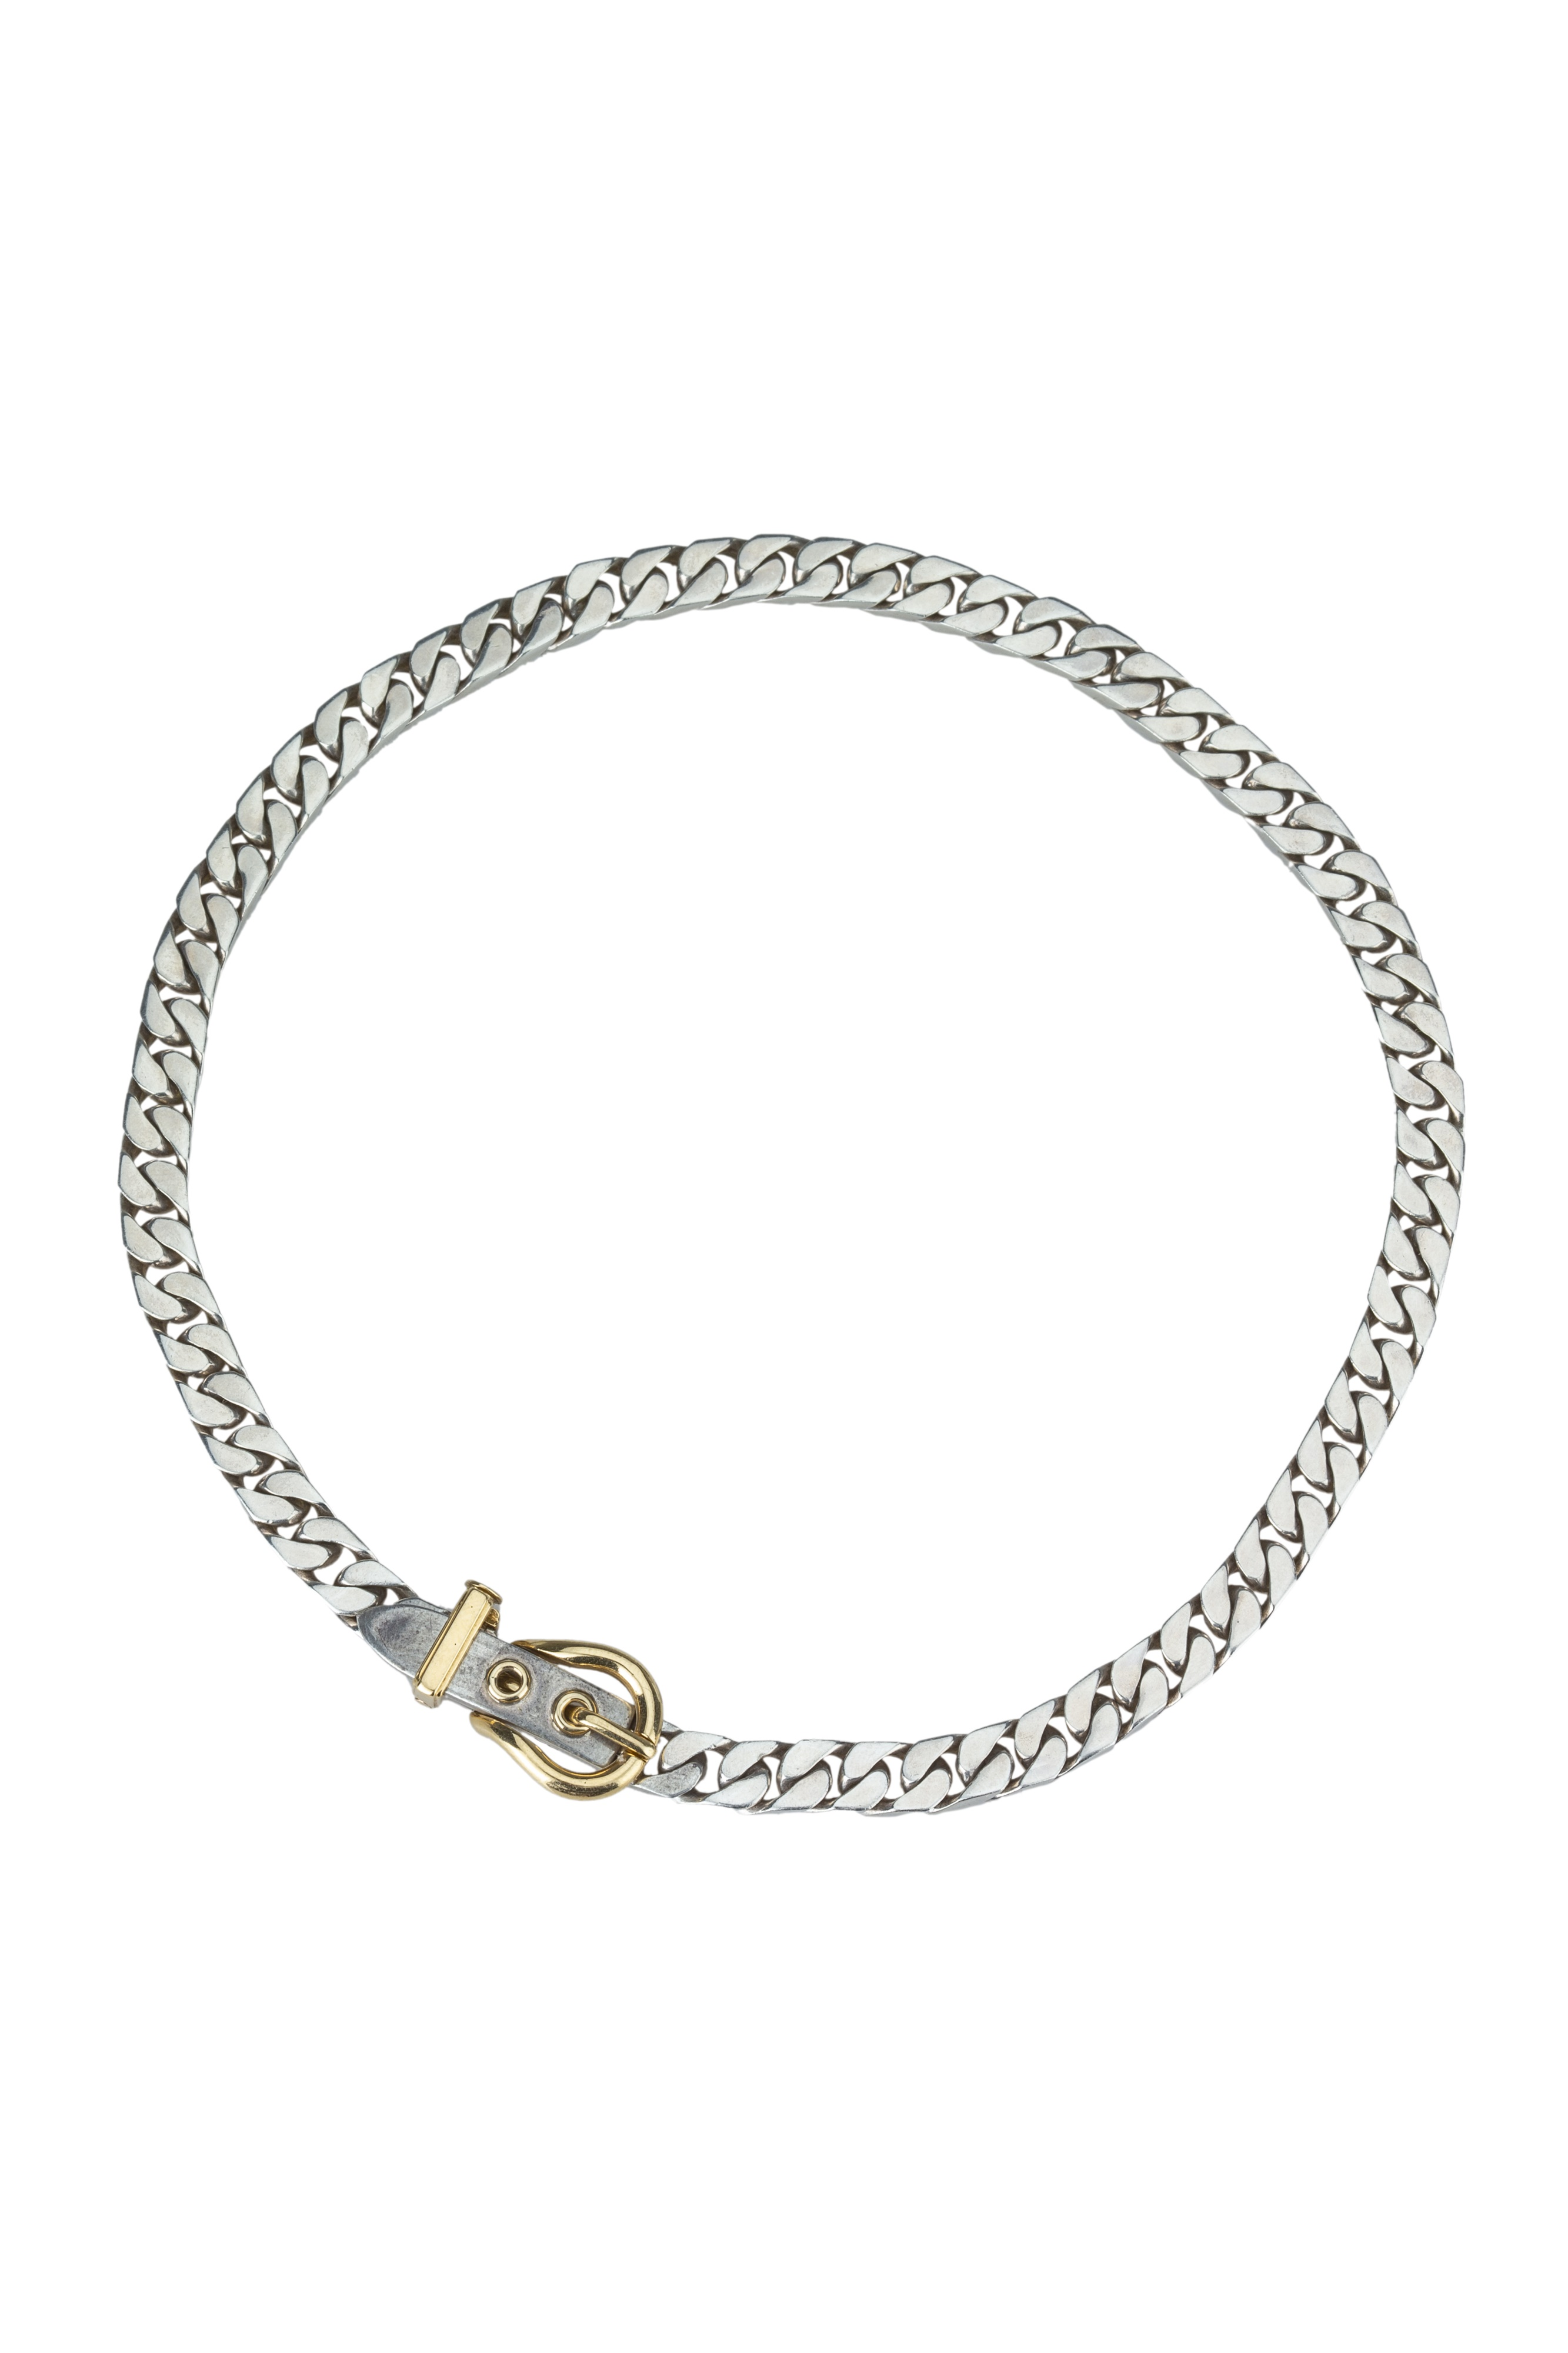 HERMES. An edgy silver collar with 18 ct gold yellow buckle.